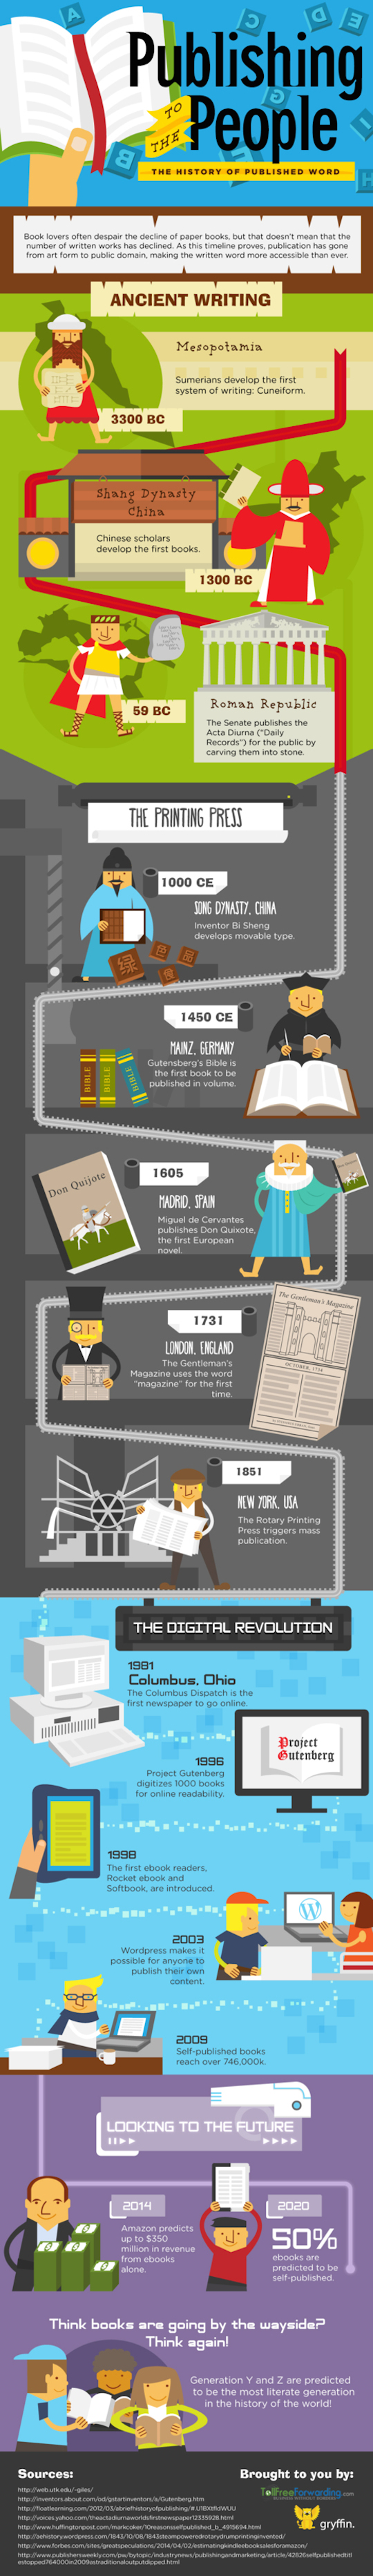 The timeline of published word - infographic